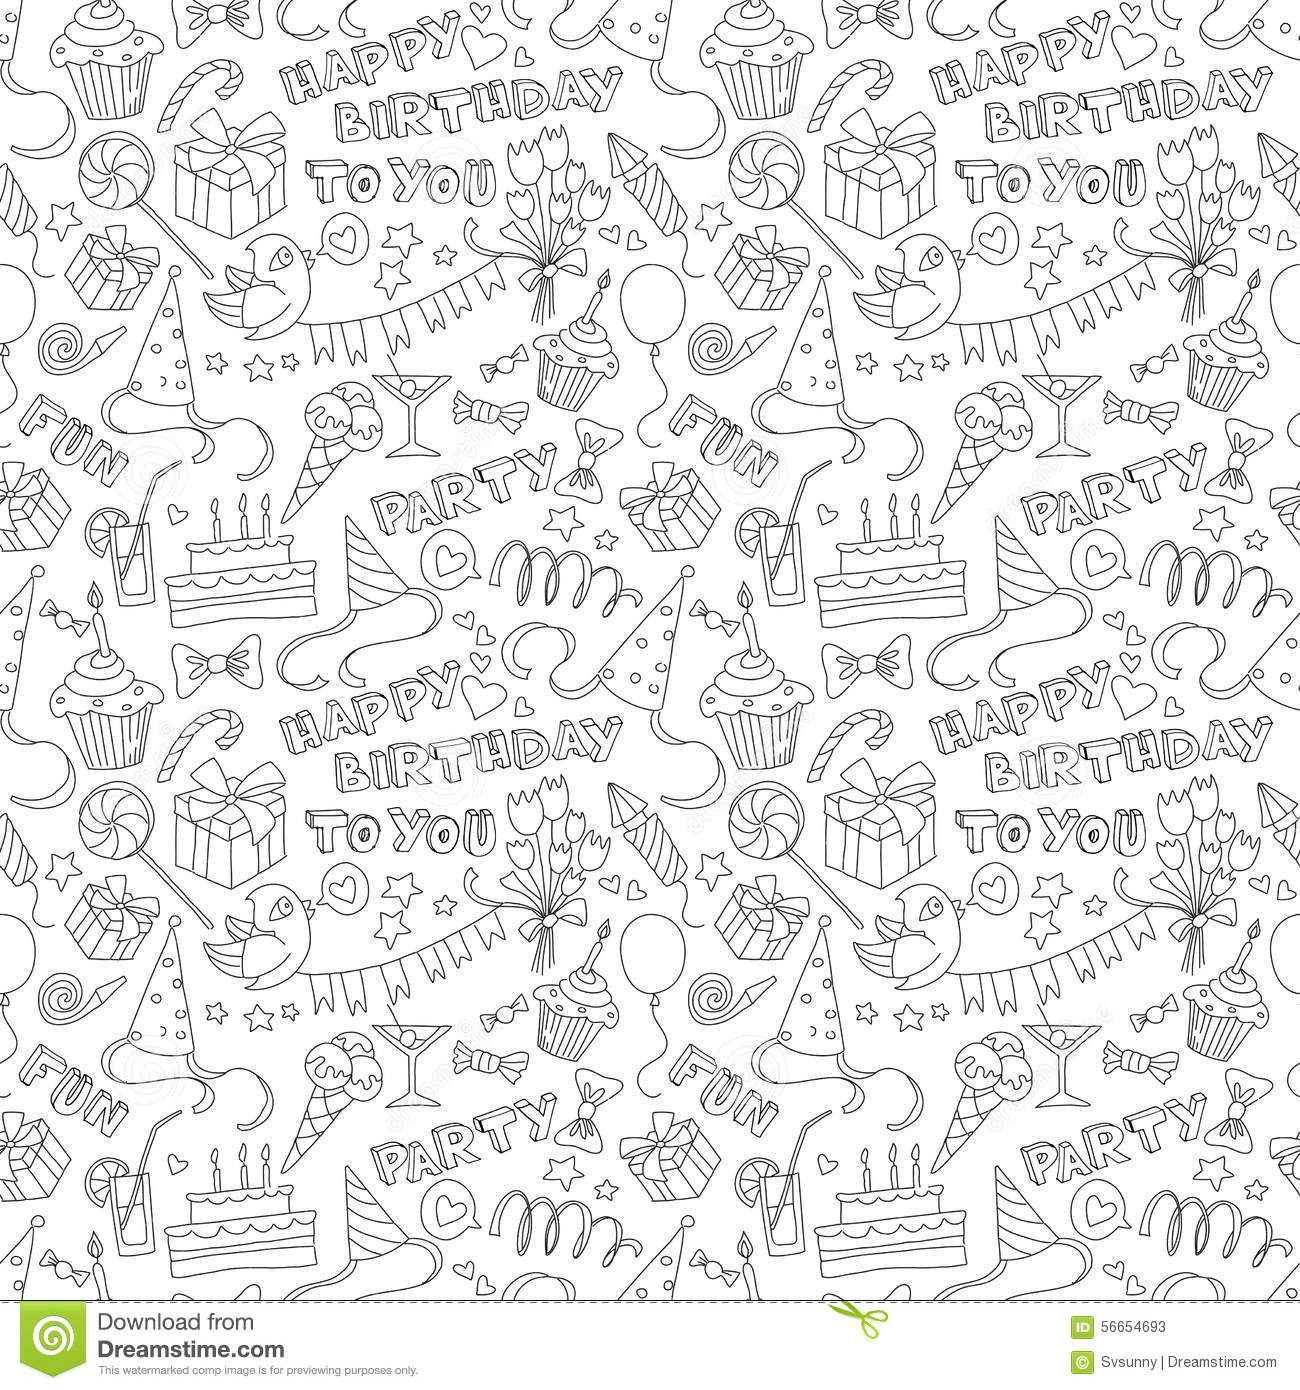 3 additionally Stock Illustration Happy Birthday Party Doodle Black White Seamless Pattern Vector Illustration Image56654735 besides Illustrazione Di Stock Modello Senza Cuciture Bianco E Nero Di Scarabocchio Del Partito Di Buon  pleanno Image56654693 as well Stock Photo New York City Skyline Vector Illustration Sketch Vintage Engraved Hand Drawn Image57718222 further Stock Illustration Ornamental Greeting Card Hand Drawn Zentangle Inspired Mandala Thank You Text Line Art Black White Illustration Image65958191. on happy birthday doodle